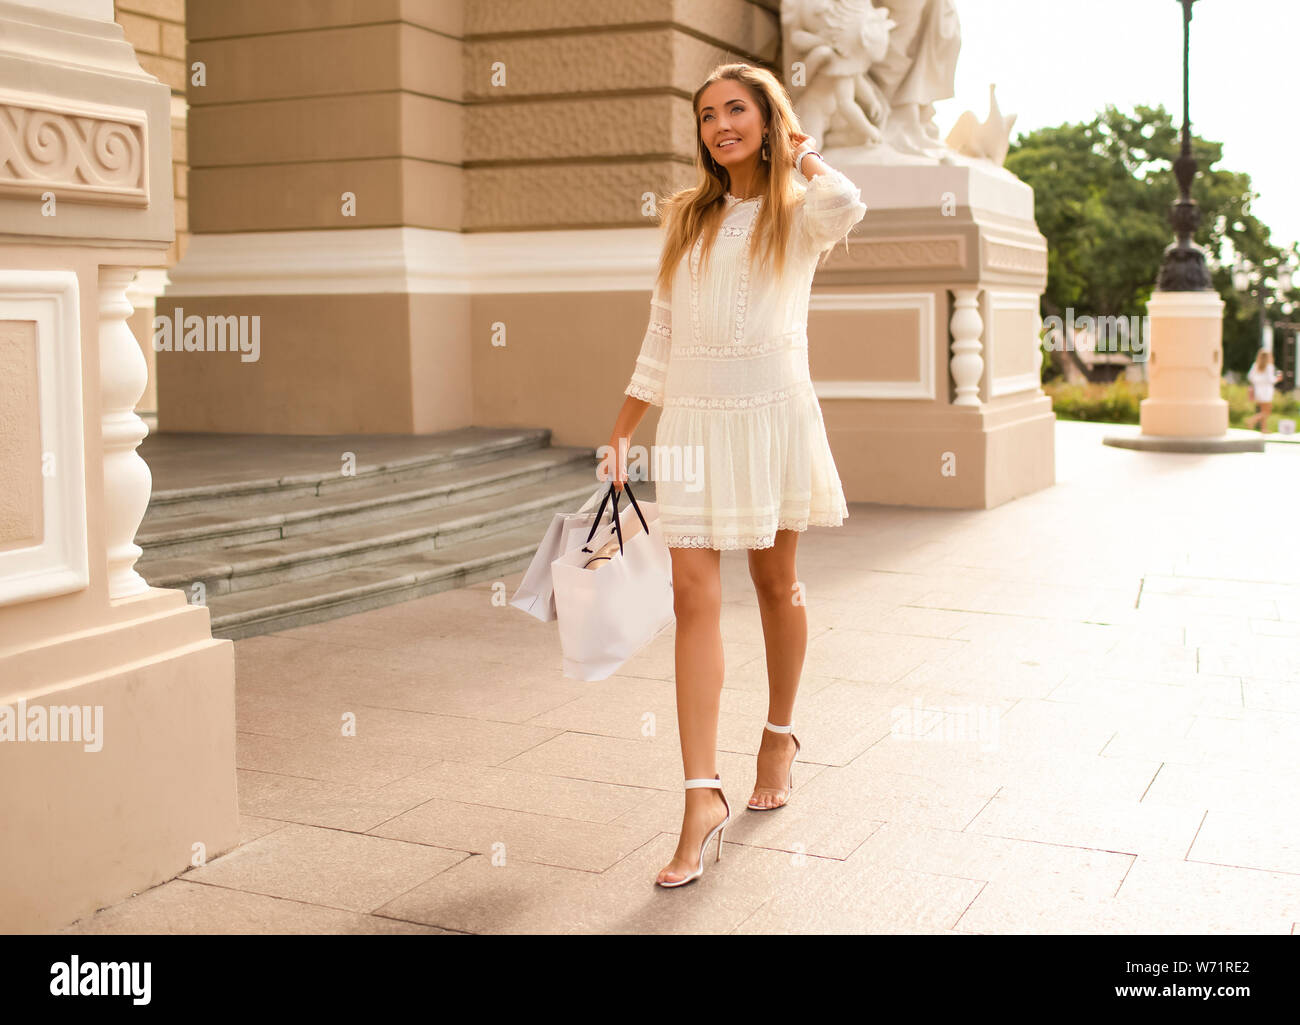 Happy lady walking and shopping in a beautiful city on her vacation. Wearing modern white dress with pattern and high heel shoes with open toes.Makeup Stock Photo